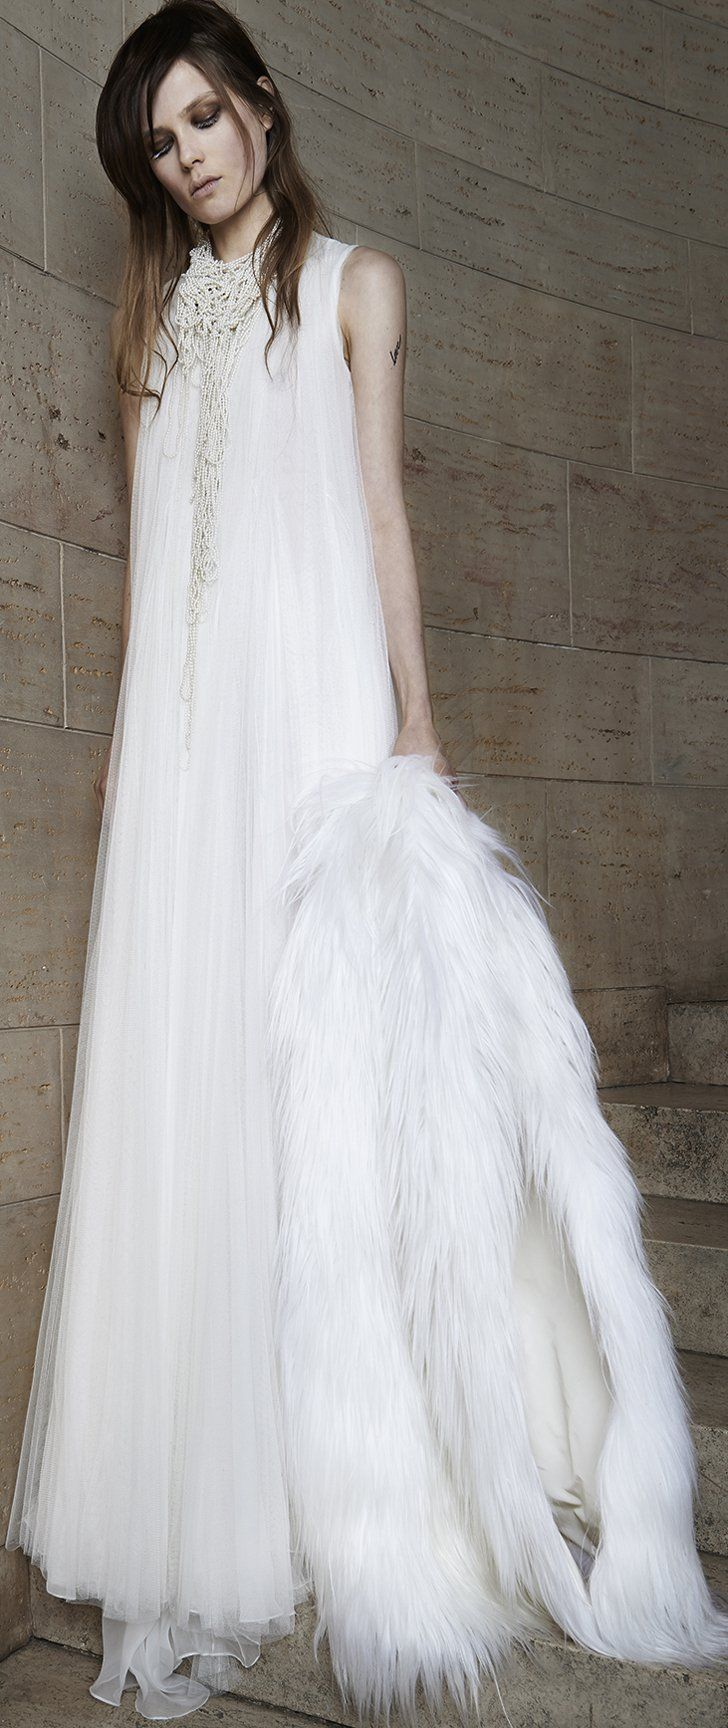 Pin for Later: Vera Wang Wants to Seduce You With Her Wedding Gowns